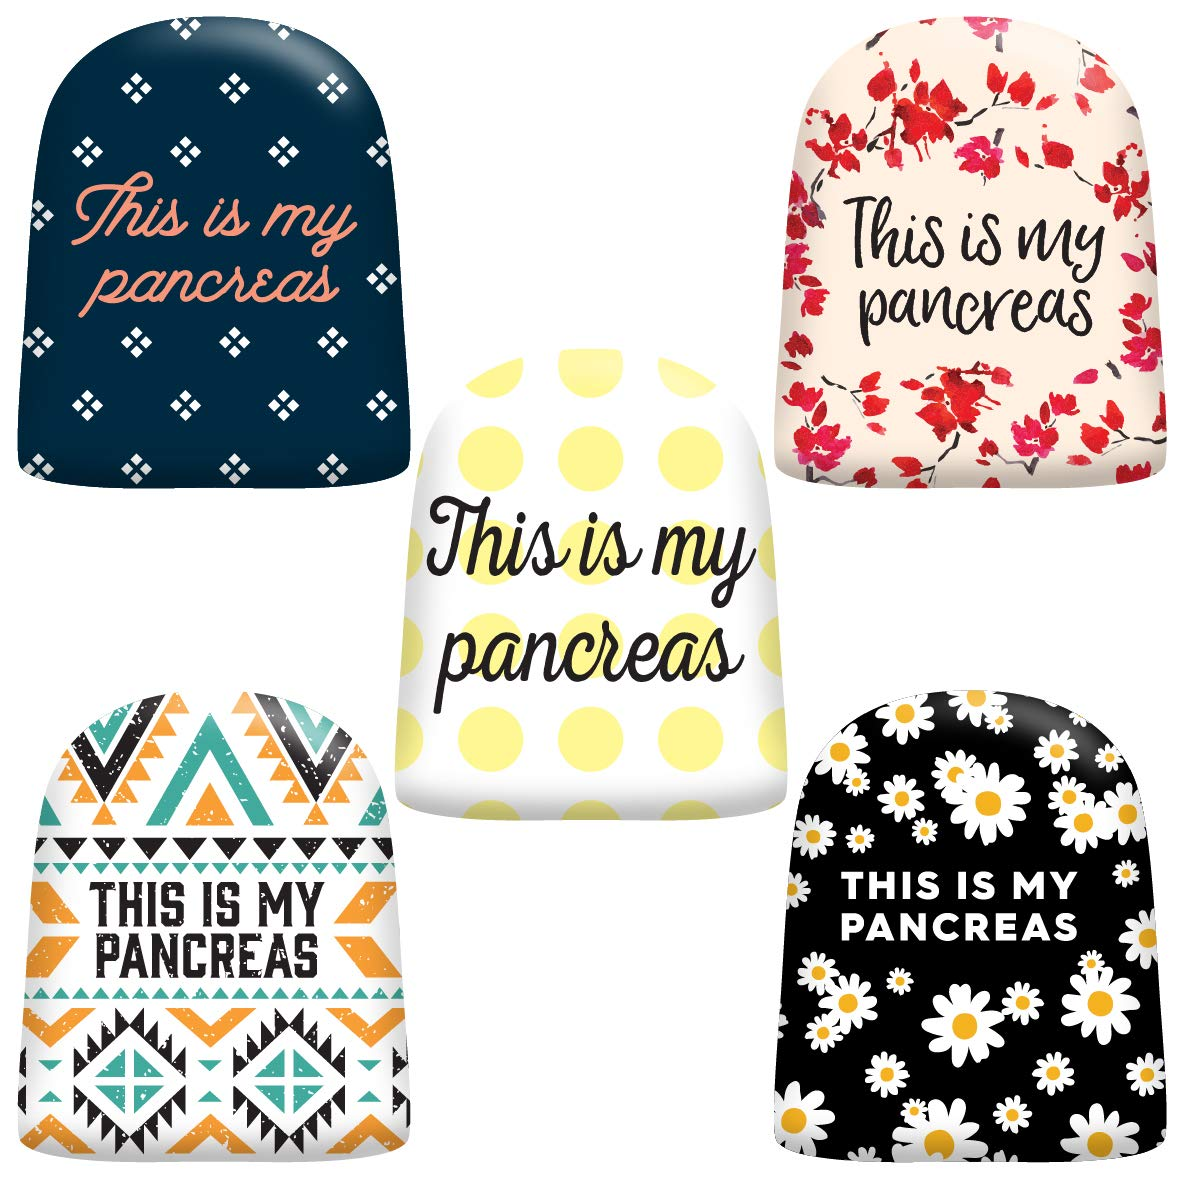 "20 Pack Omnipod Adhesive Stickers - Accessory Patches for Omnipod Insulin Pump -""This is My Pancreas"" Designs"